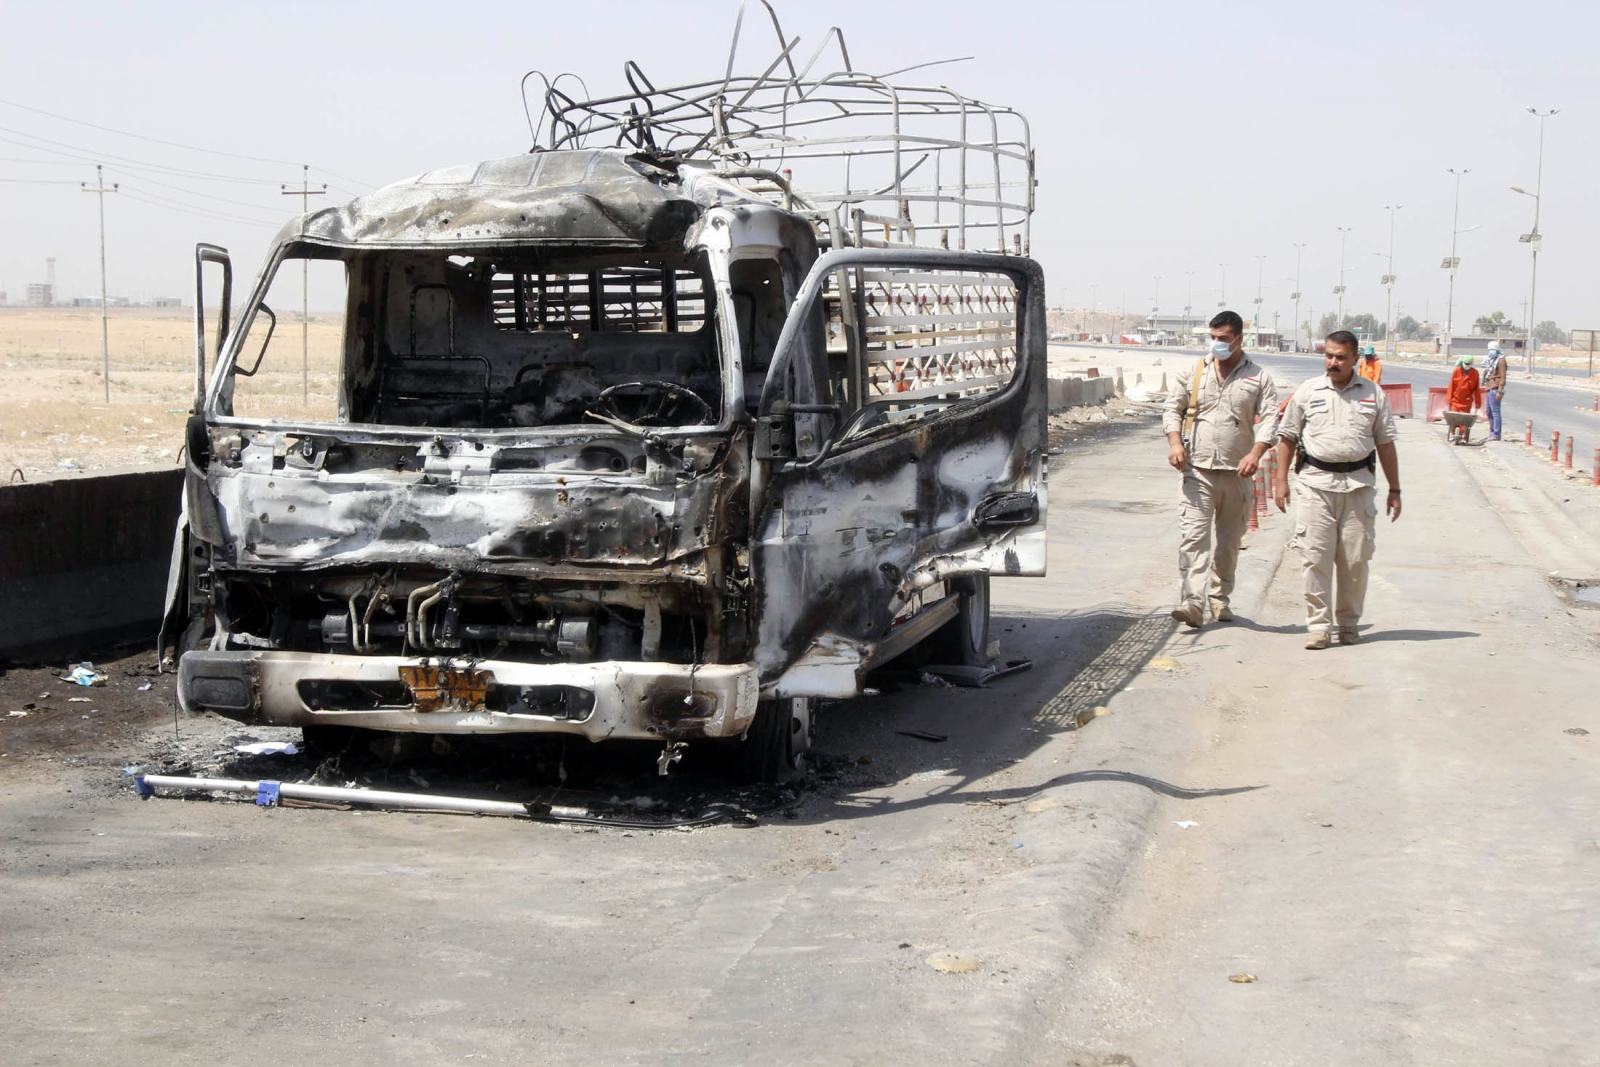 A Briton had reportedly died in a blast that rocked the town of Baiji  in northern Iraq